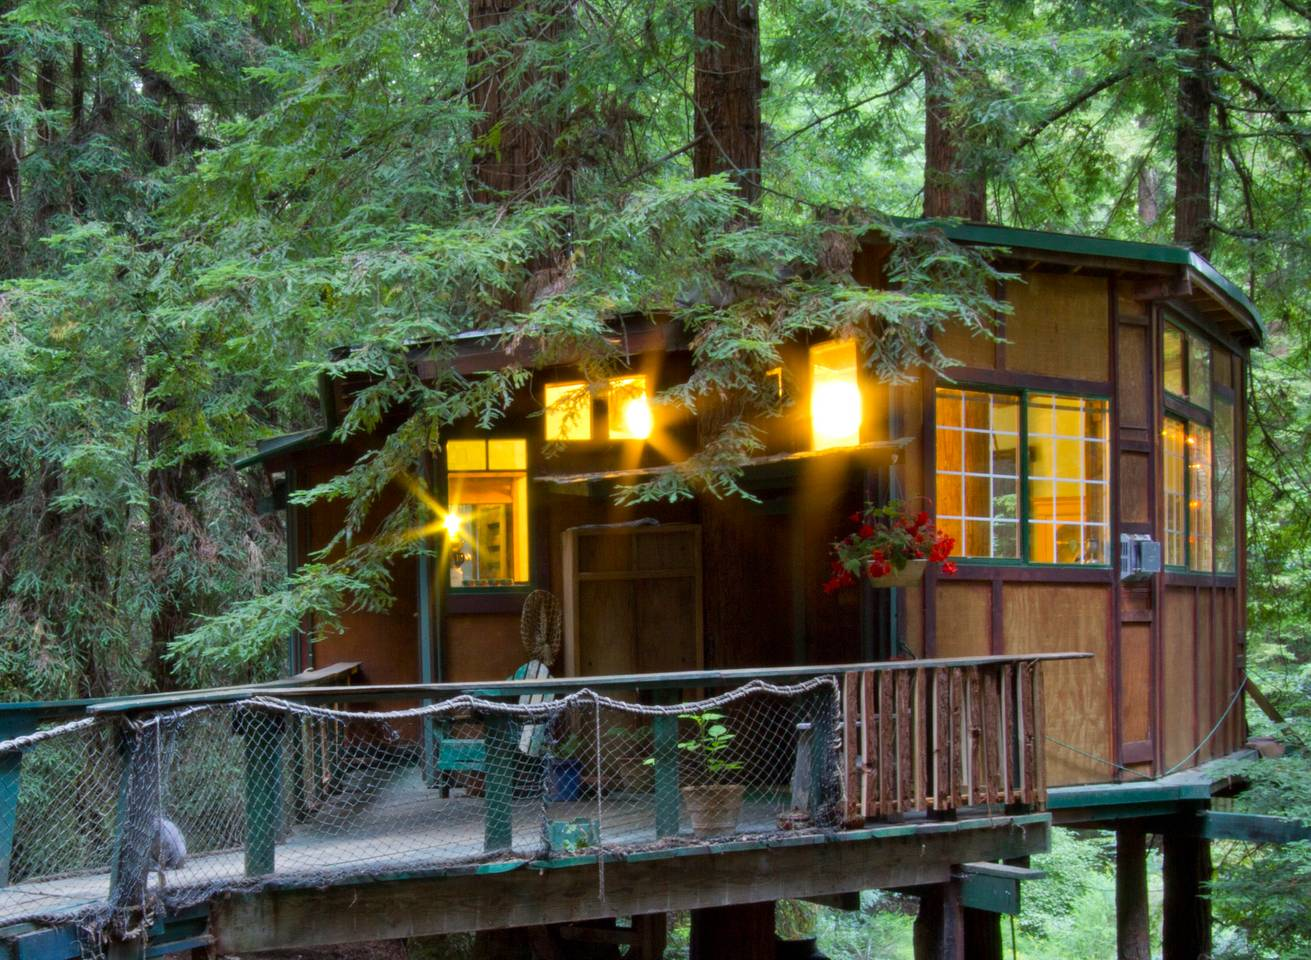 airbnb treehouse close to the pacific coast highway